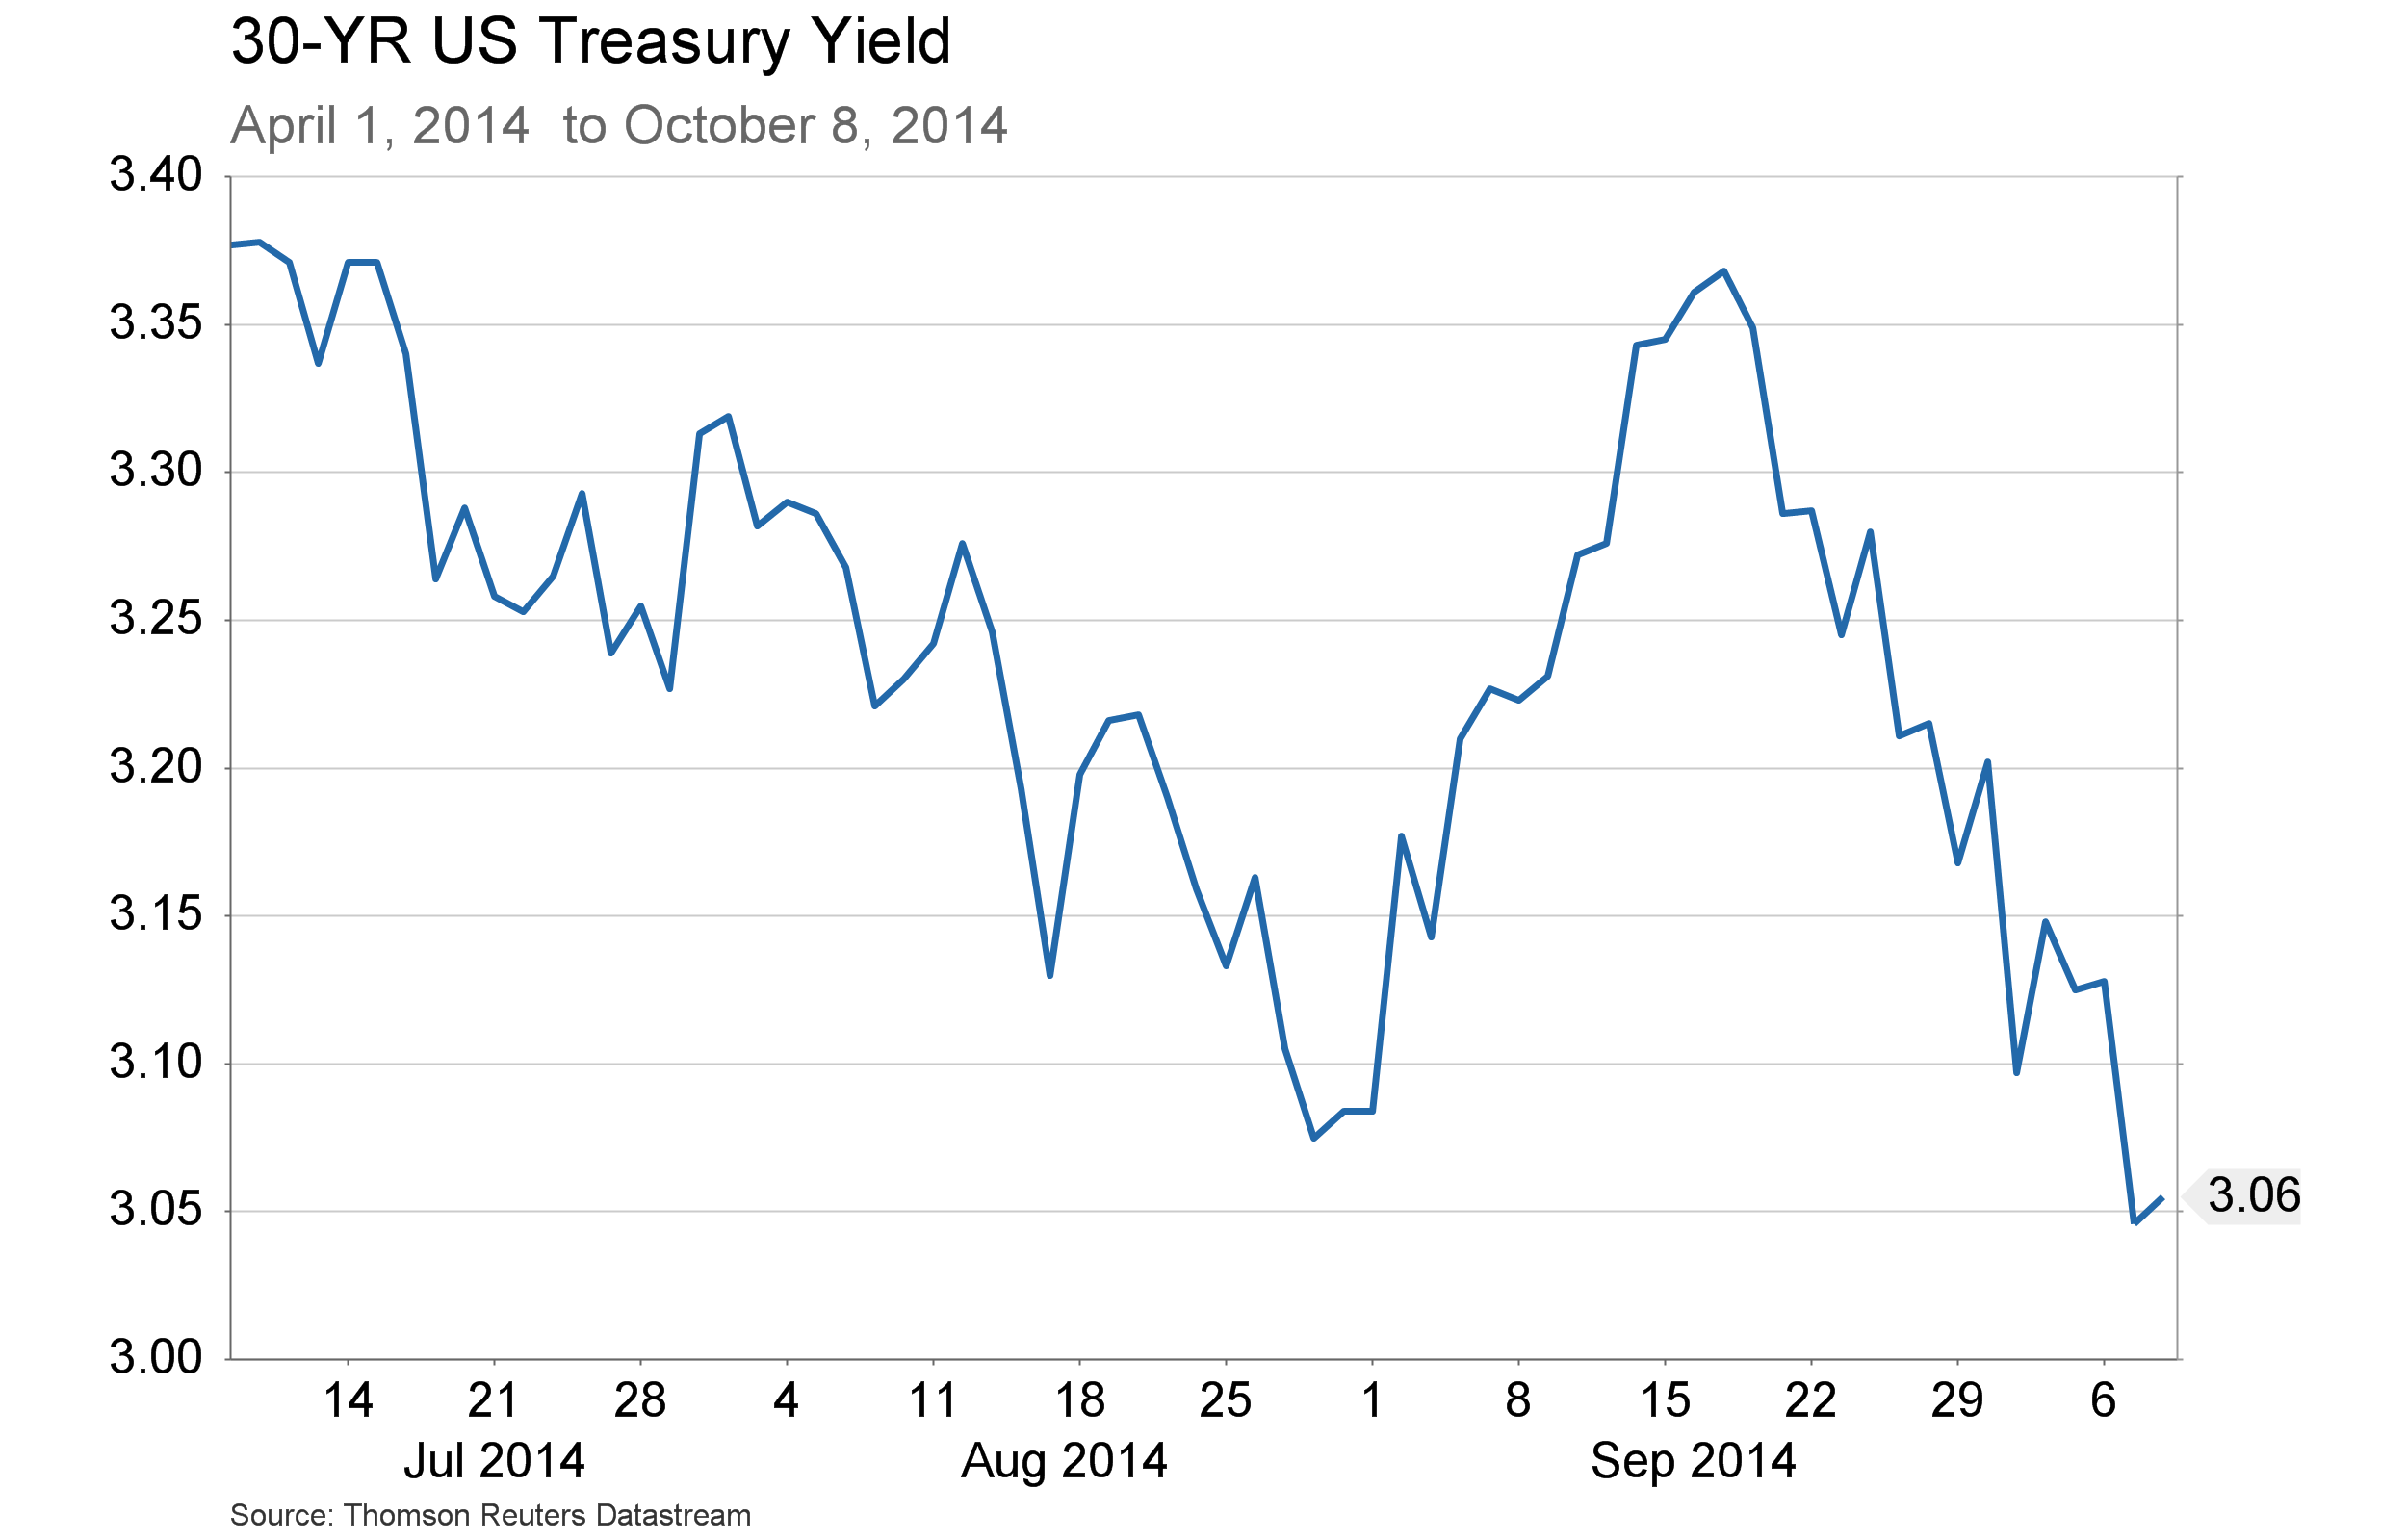 Oct.10 - 30 Year US Treasury Yield